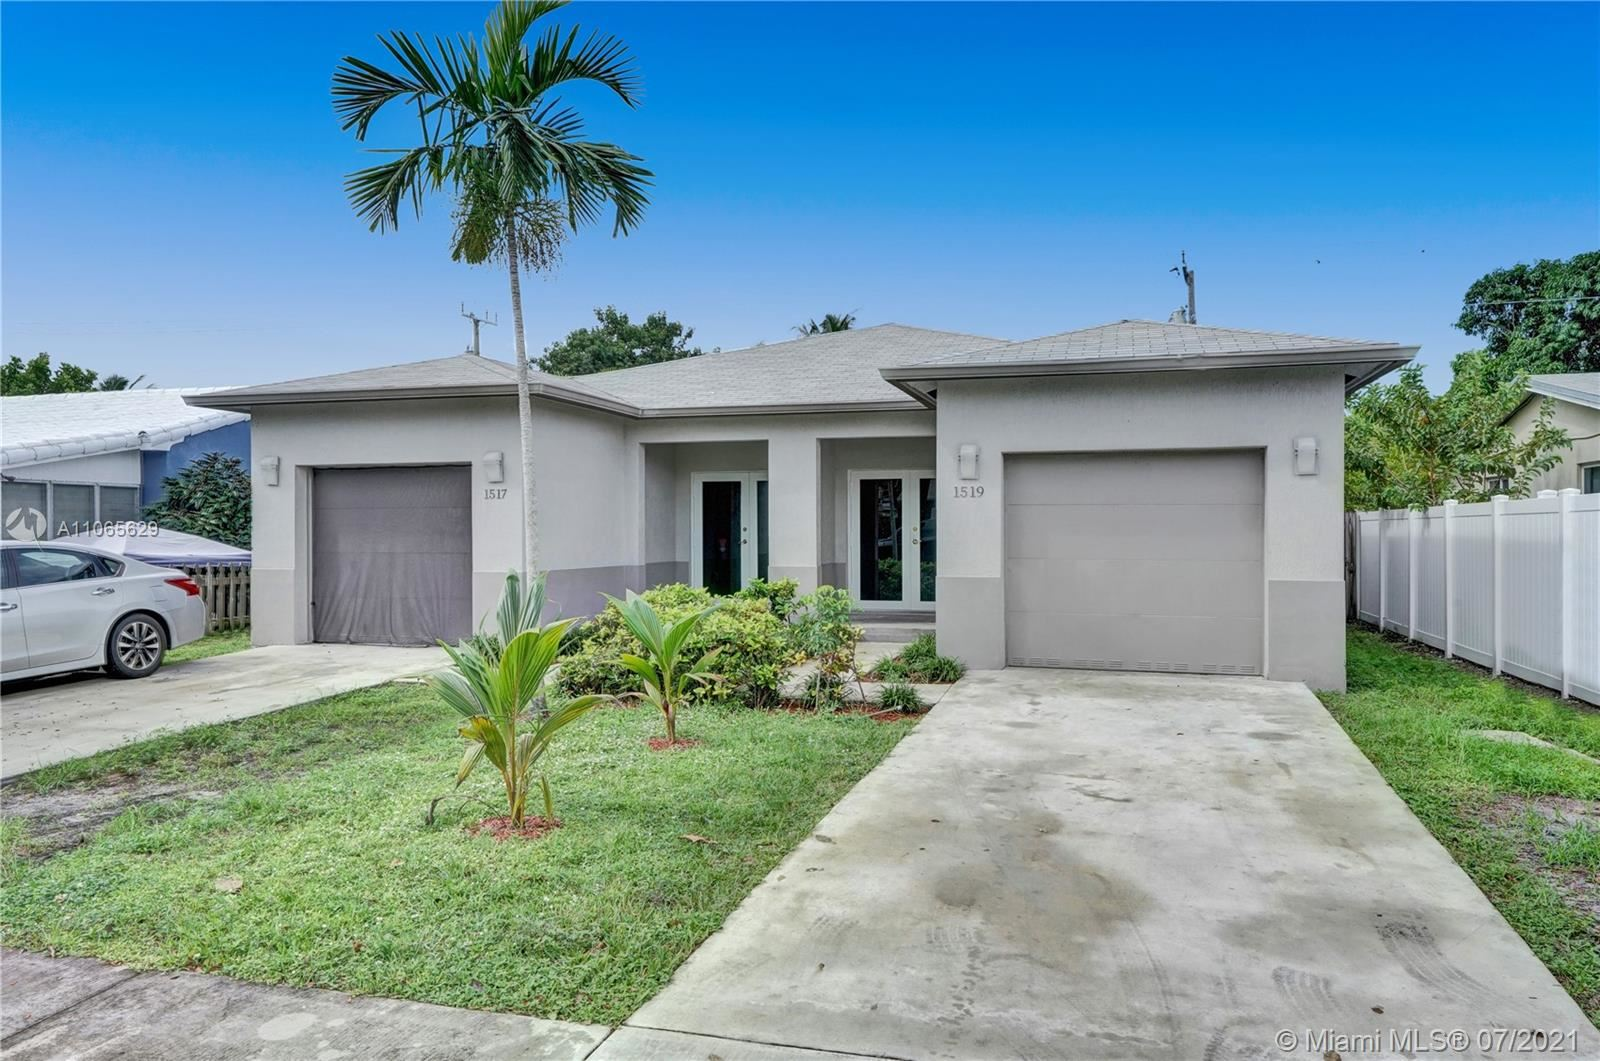 Photo of 1519 NE 3rd Ave, Fort Lauderdale, FL 33304 (MLS # A11065629)